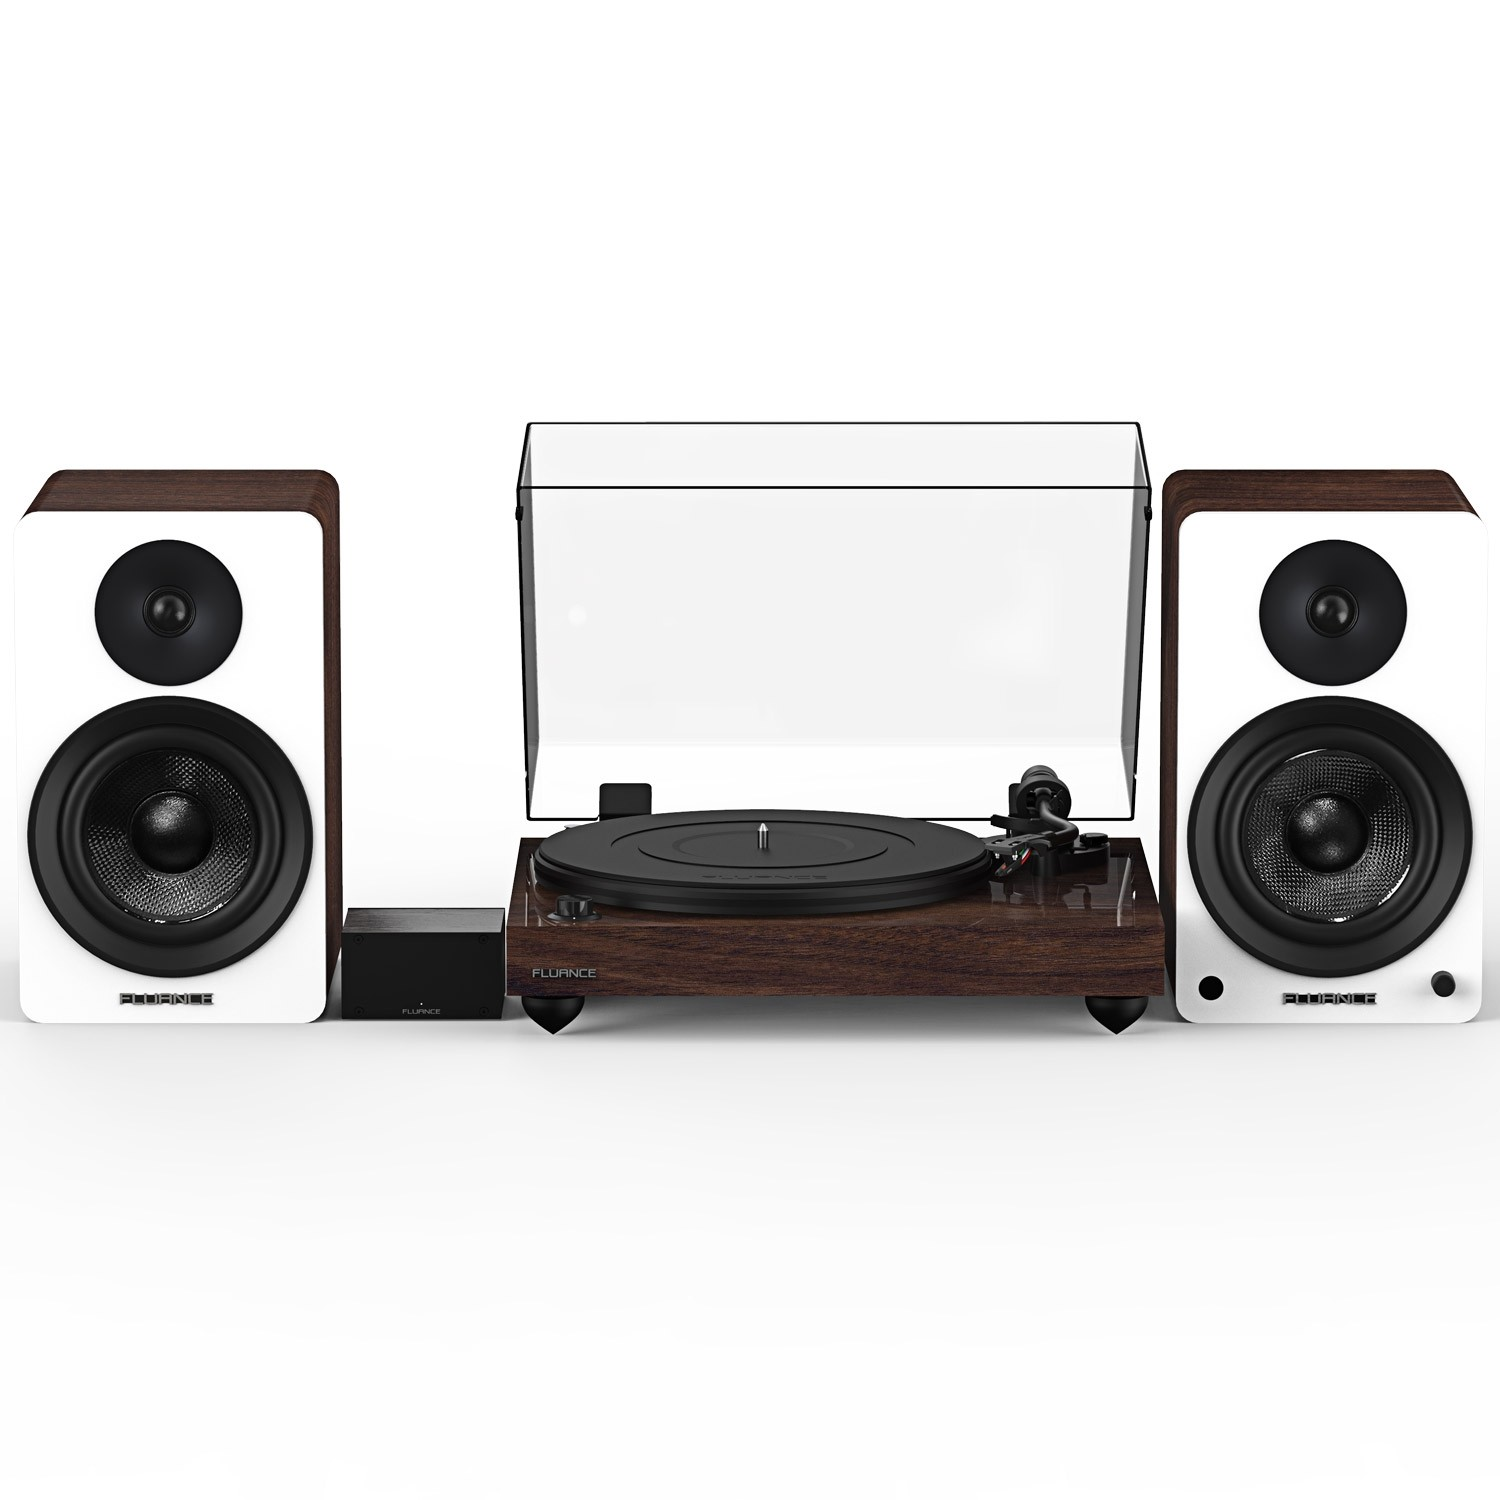 "Reference RT82 High Fidelity Vinyl Turntable with PA10 Phono Preamp and Ai61 Powered 6.5"" Bookshelf Speakers"